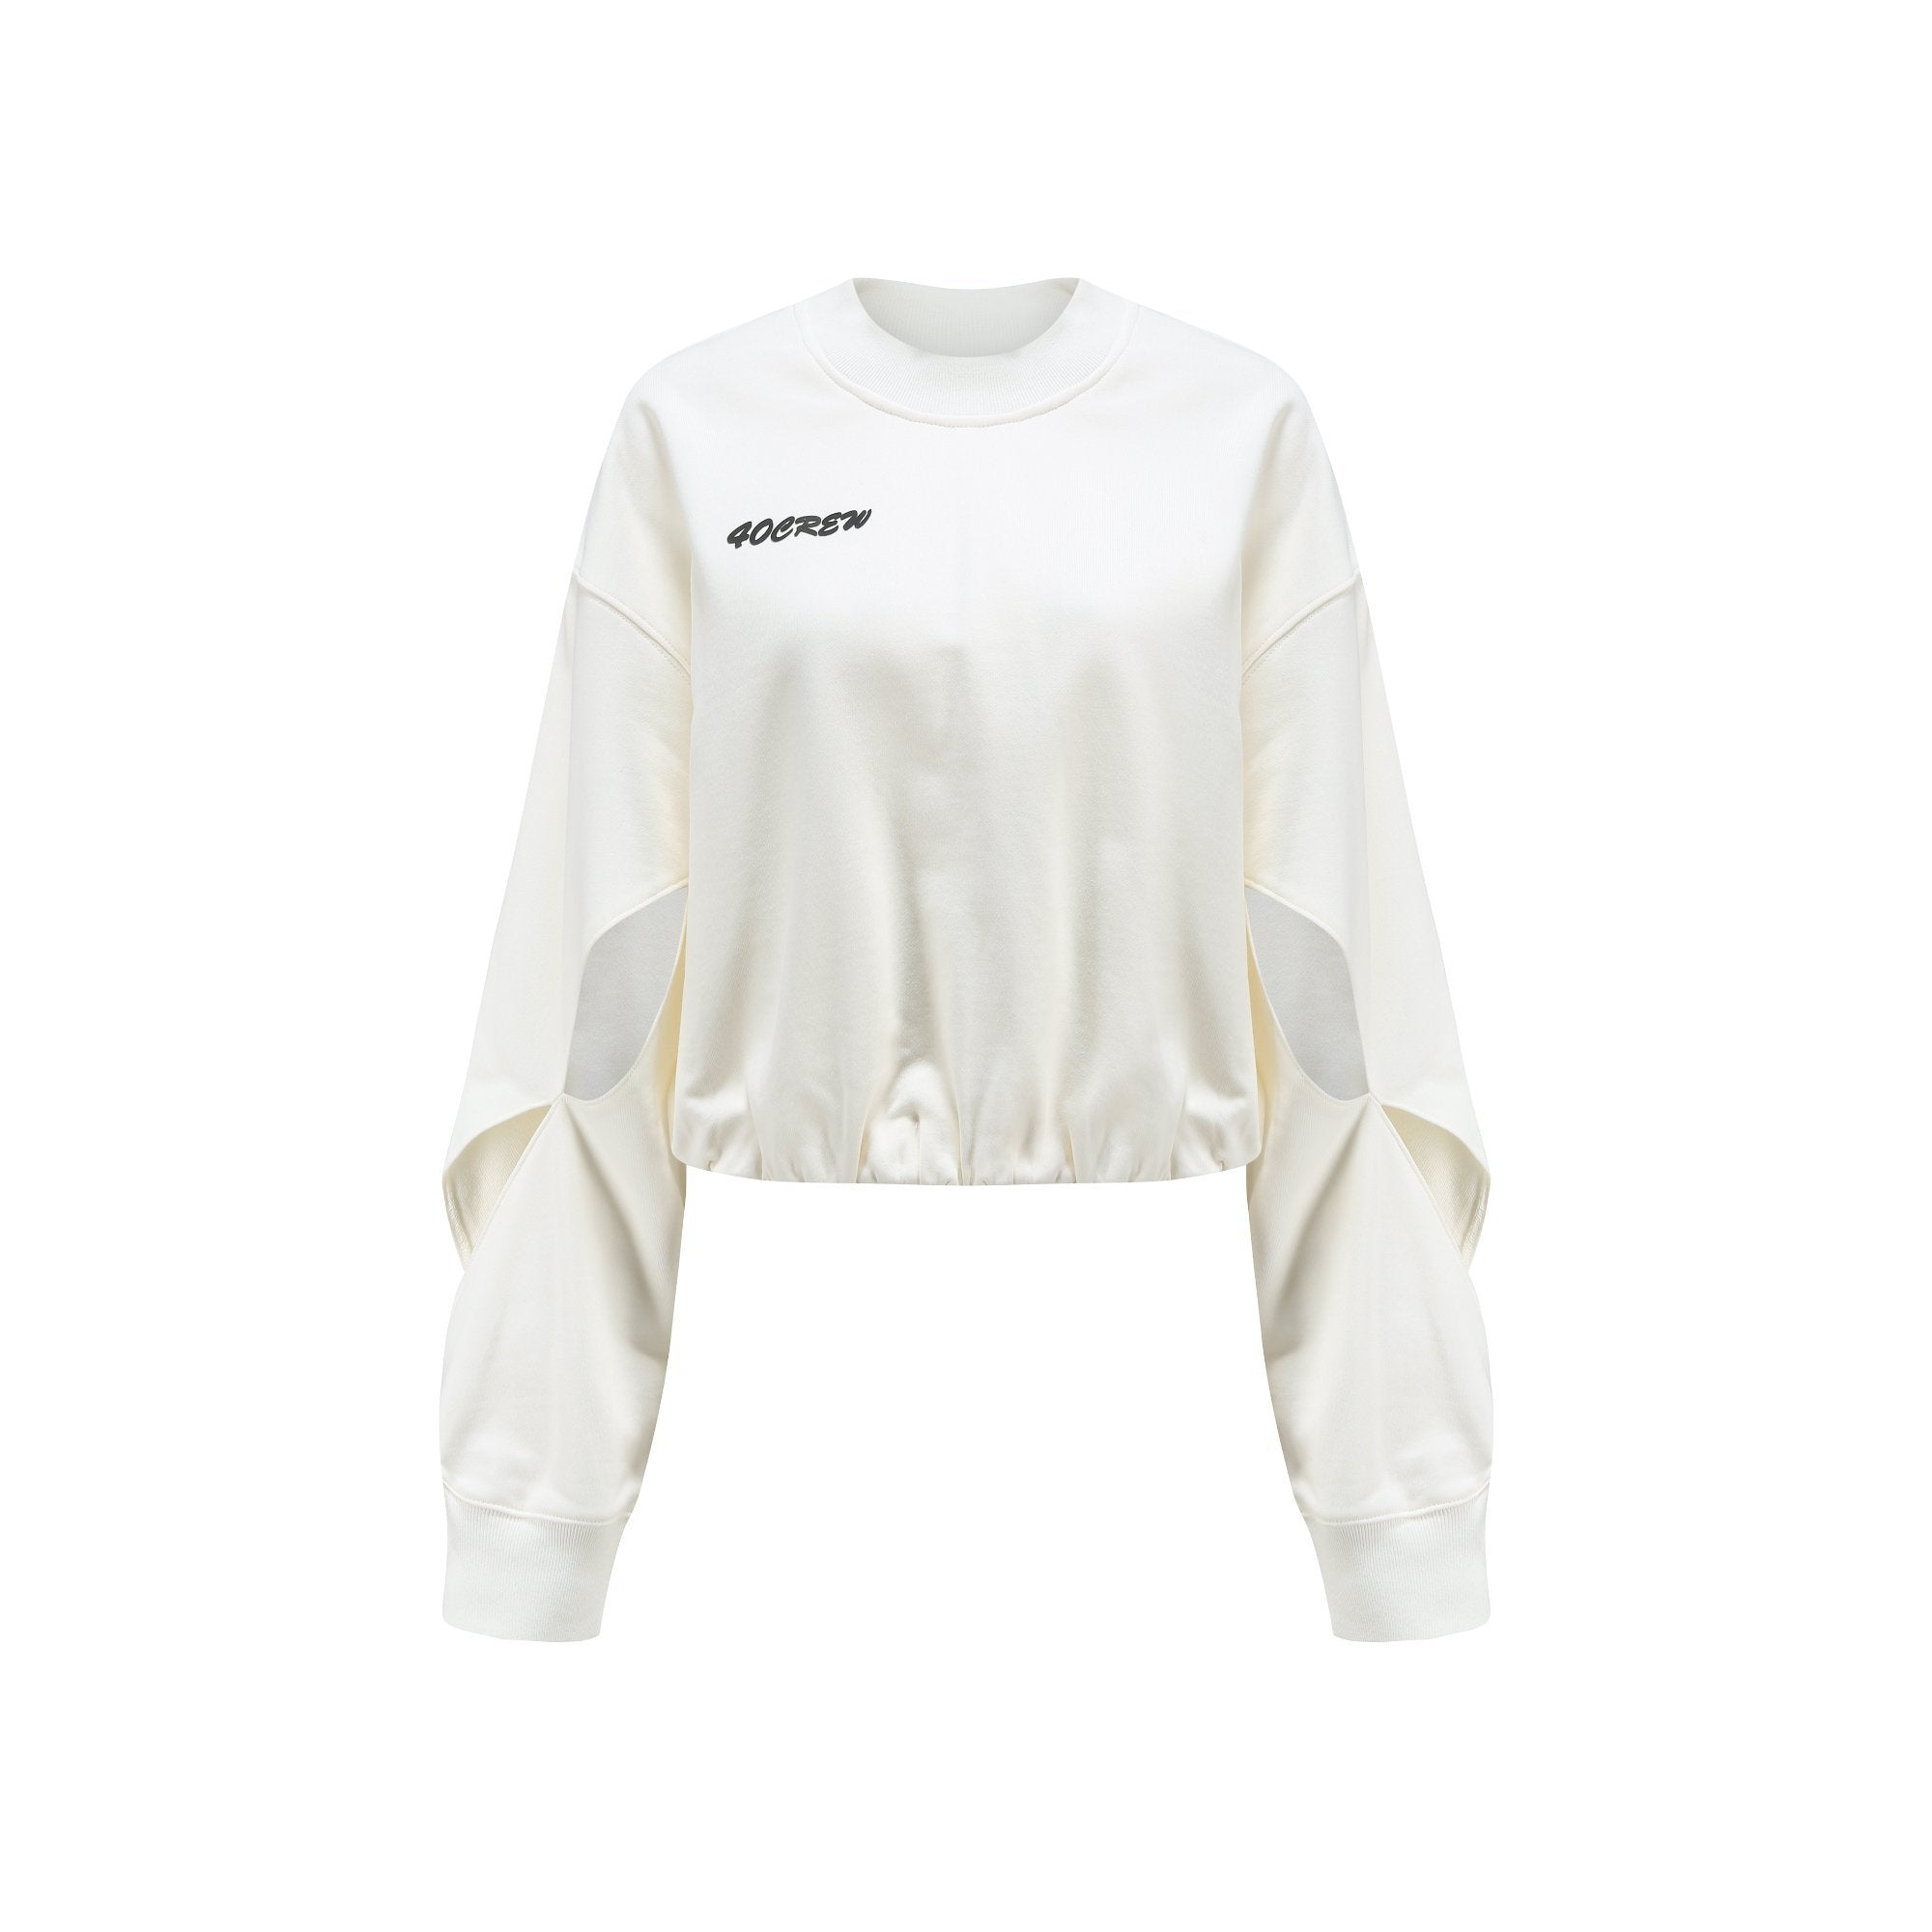 40 CREW White Split Sweatshirt | MADA IN CHINA